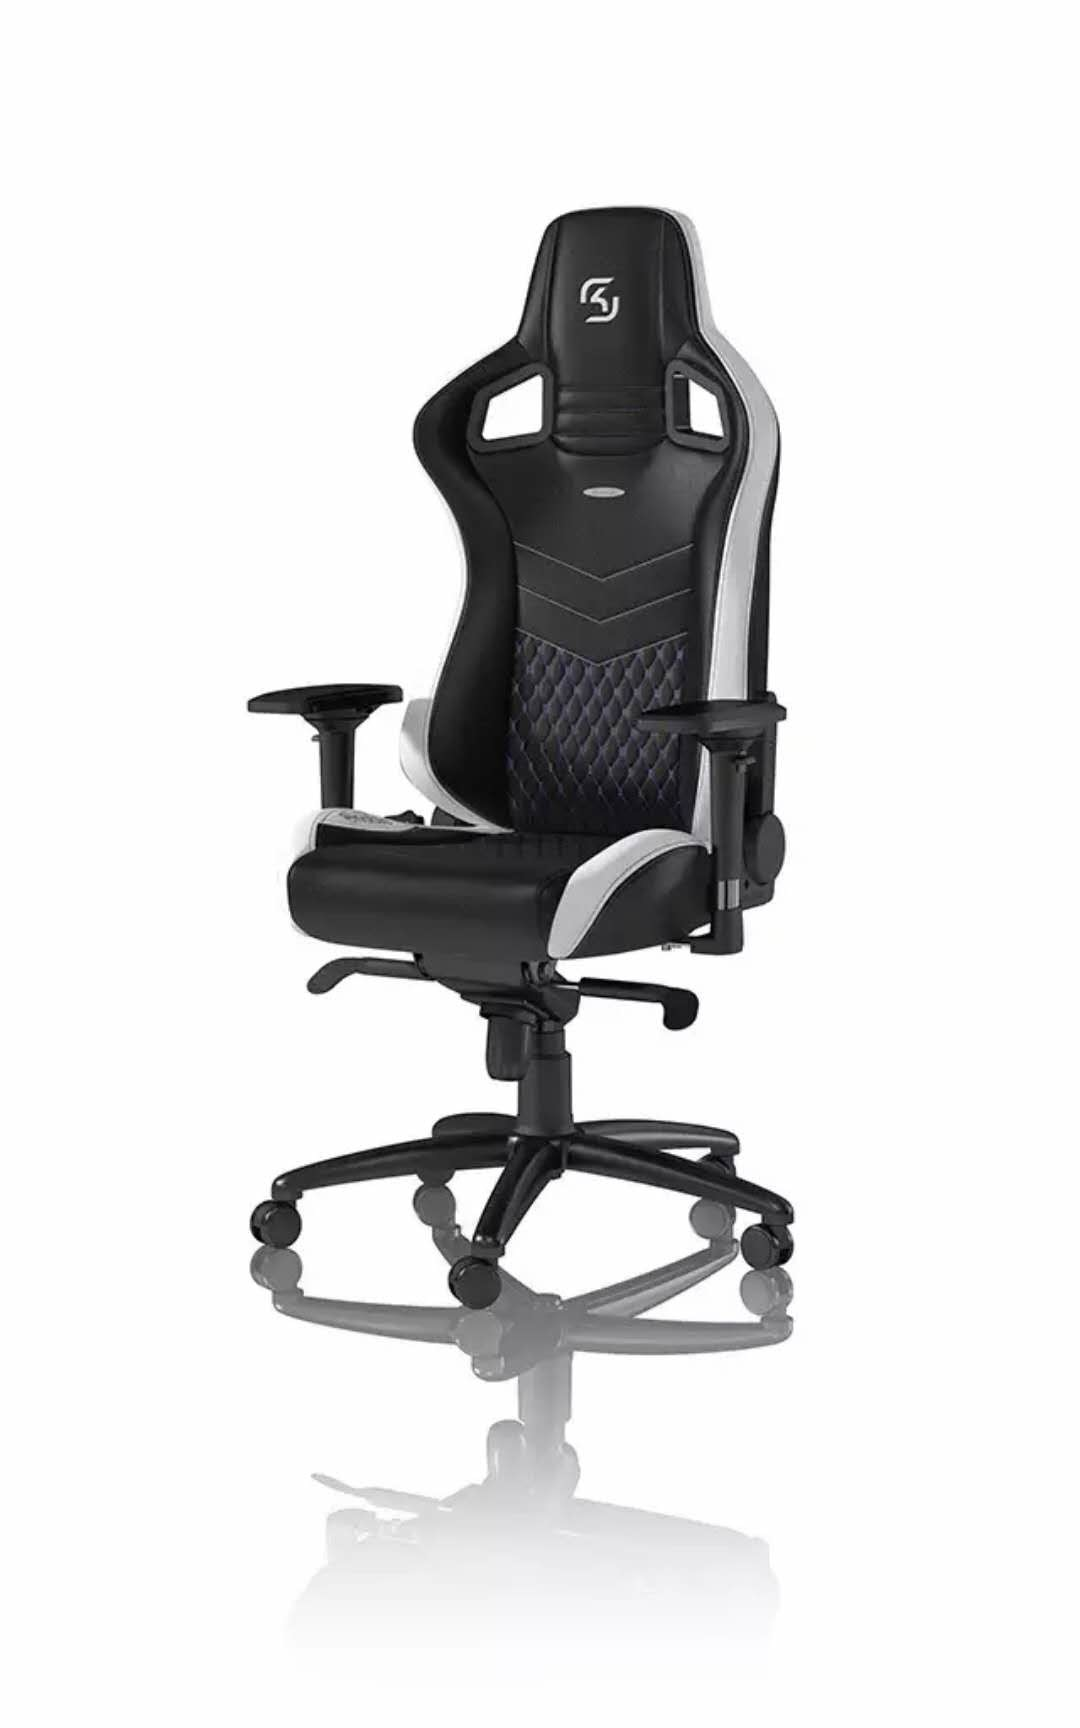 2039 Black Single Adjustable Swivel Office Chair Spray Painting Base